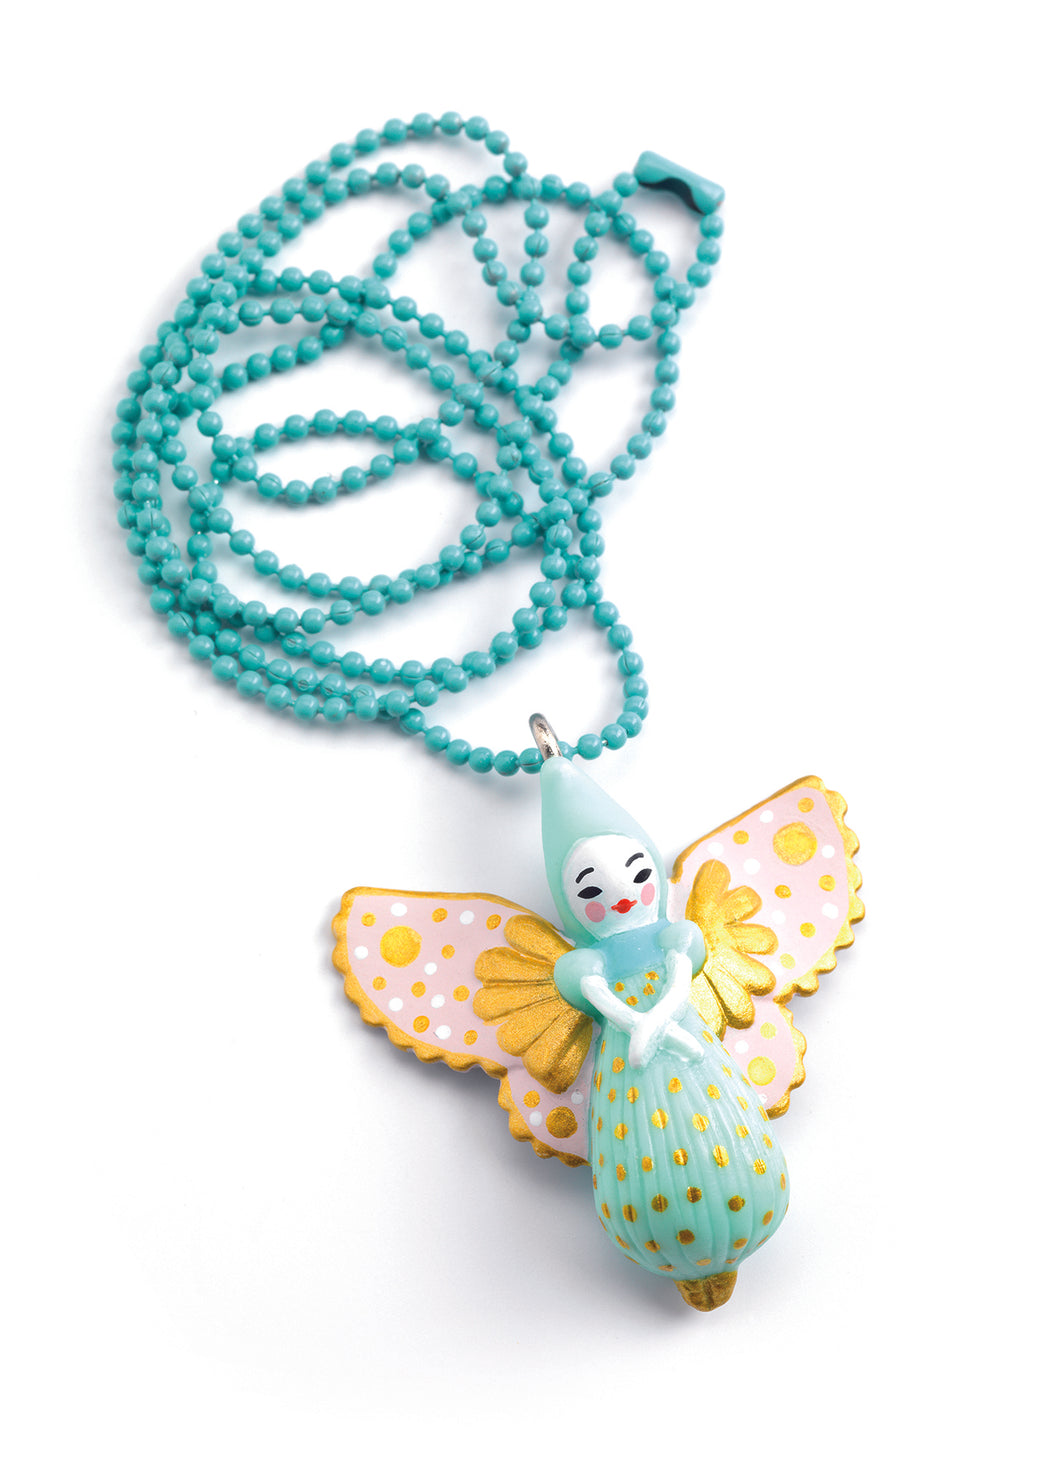 Fairy lovely charm necklace